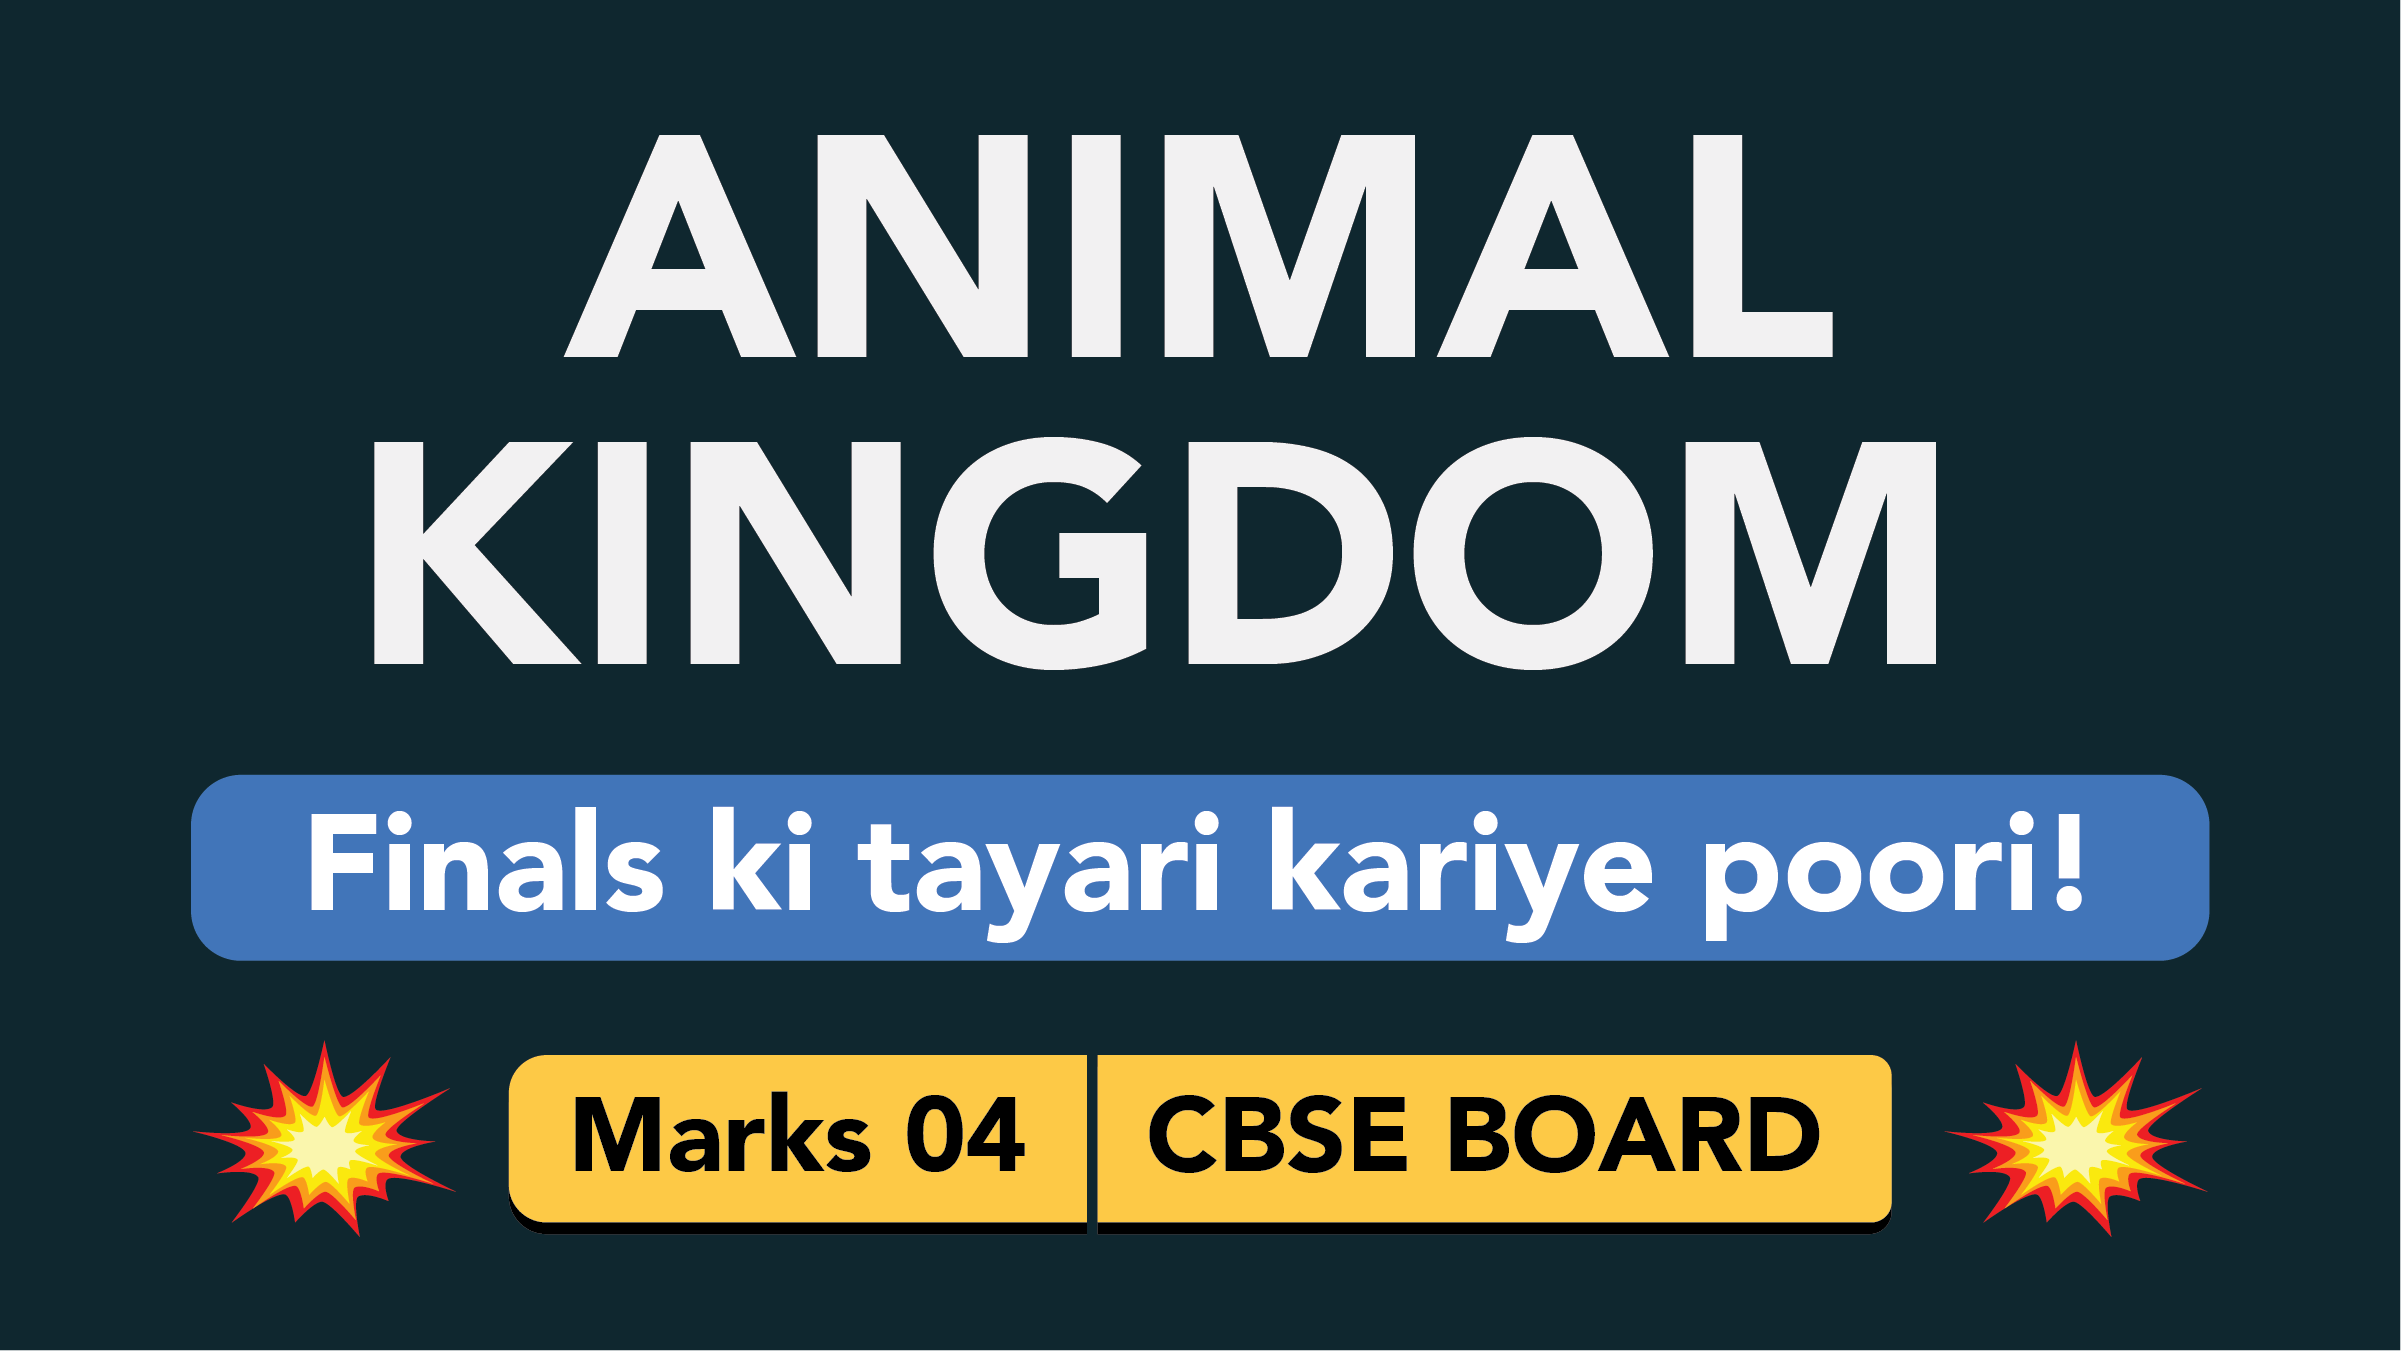 CBSE Board Class 11 ANIMAL KINGDOM || Weightage and Important Topics